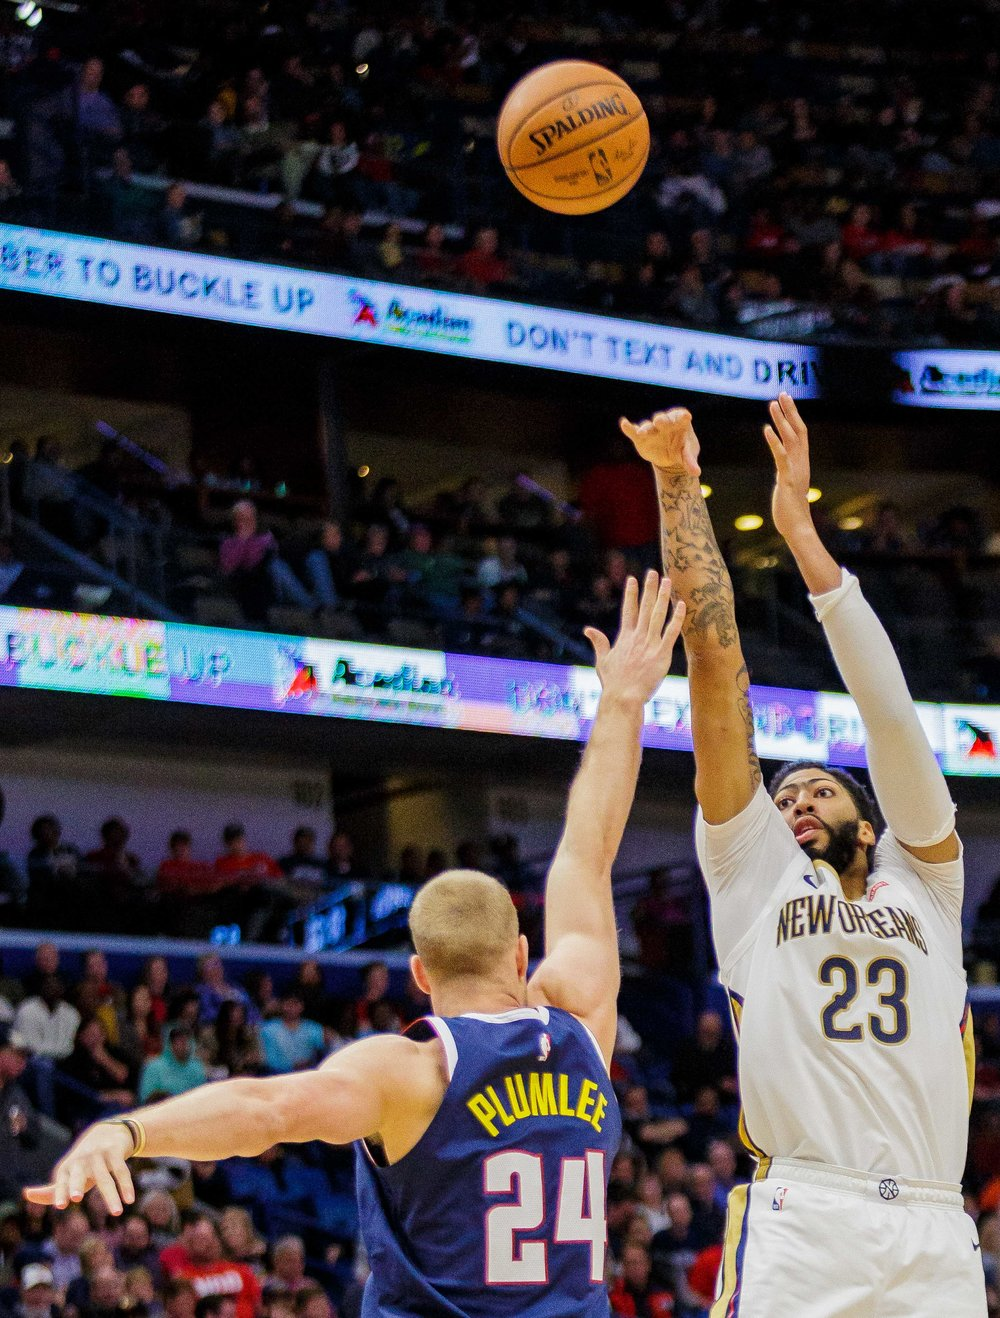 New Orleans Pelicans for­ward Anthony Davis (23) shoots over Denver Nuggets forward Mason Plumlee (24) in the second half of an NBA basketball game in the Smoothie King Center in New Orleans, La. Monday, Nov. 17, 2018. The Pelicans won, 125-115.